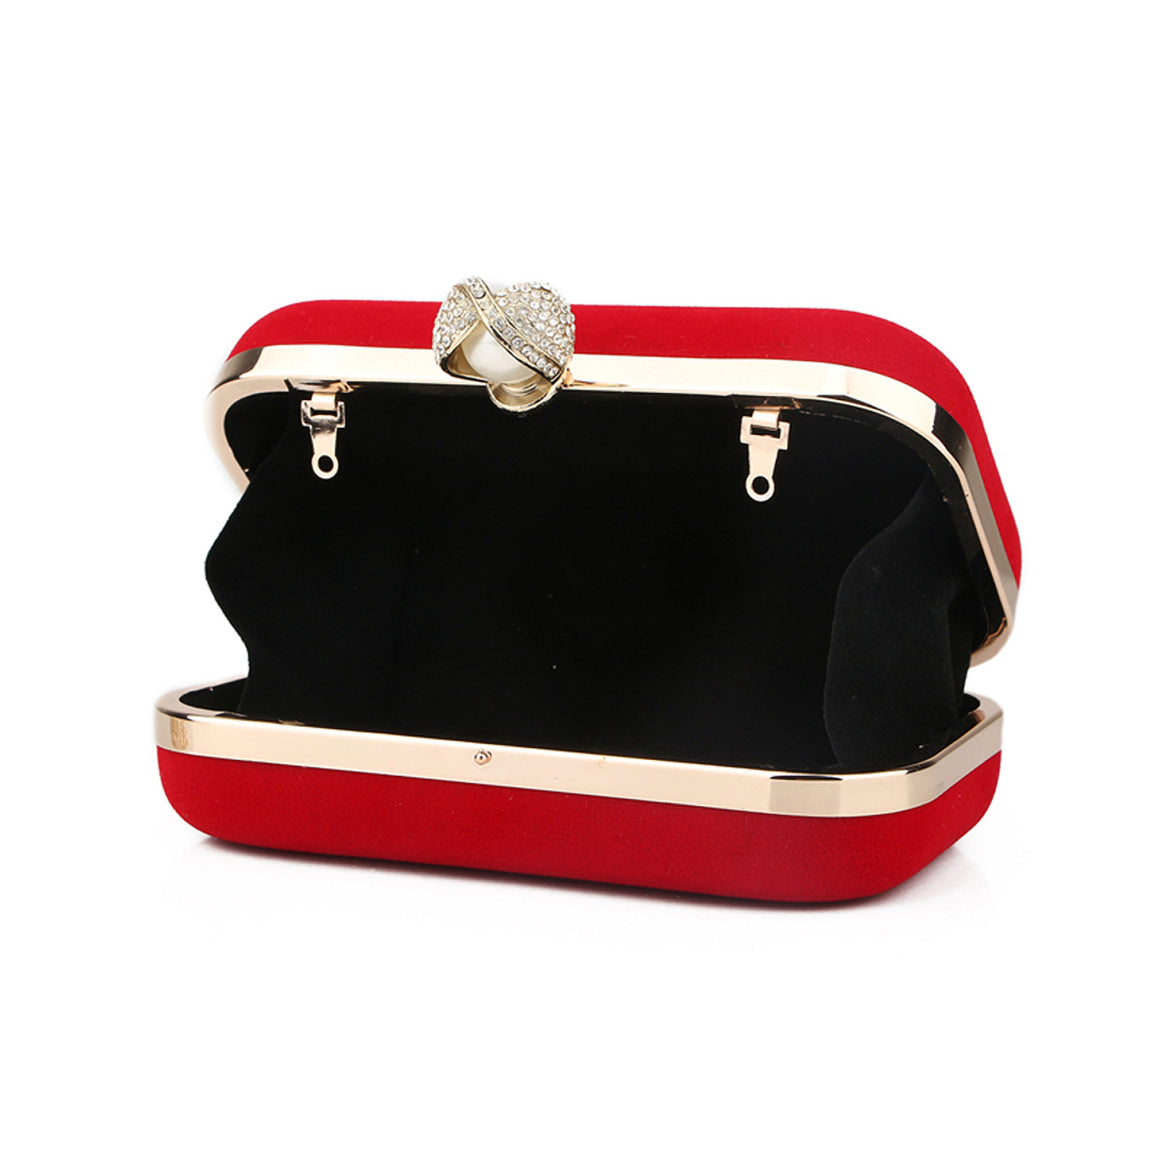 new Crystal Clutch High Quality sueded Evening Bags women bag Hard Case Evening Bag Women Messenger Bags free shipping XP